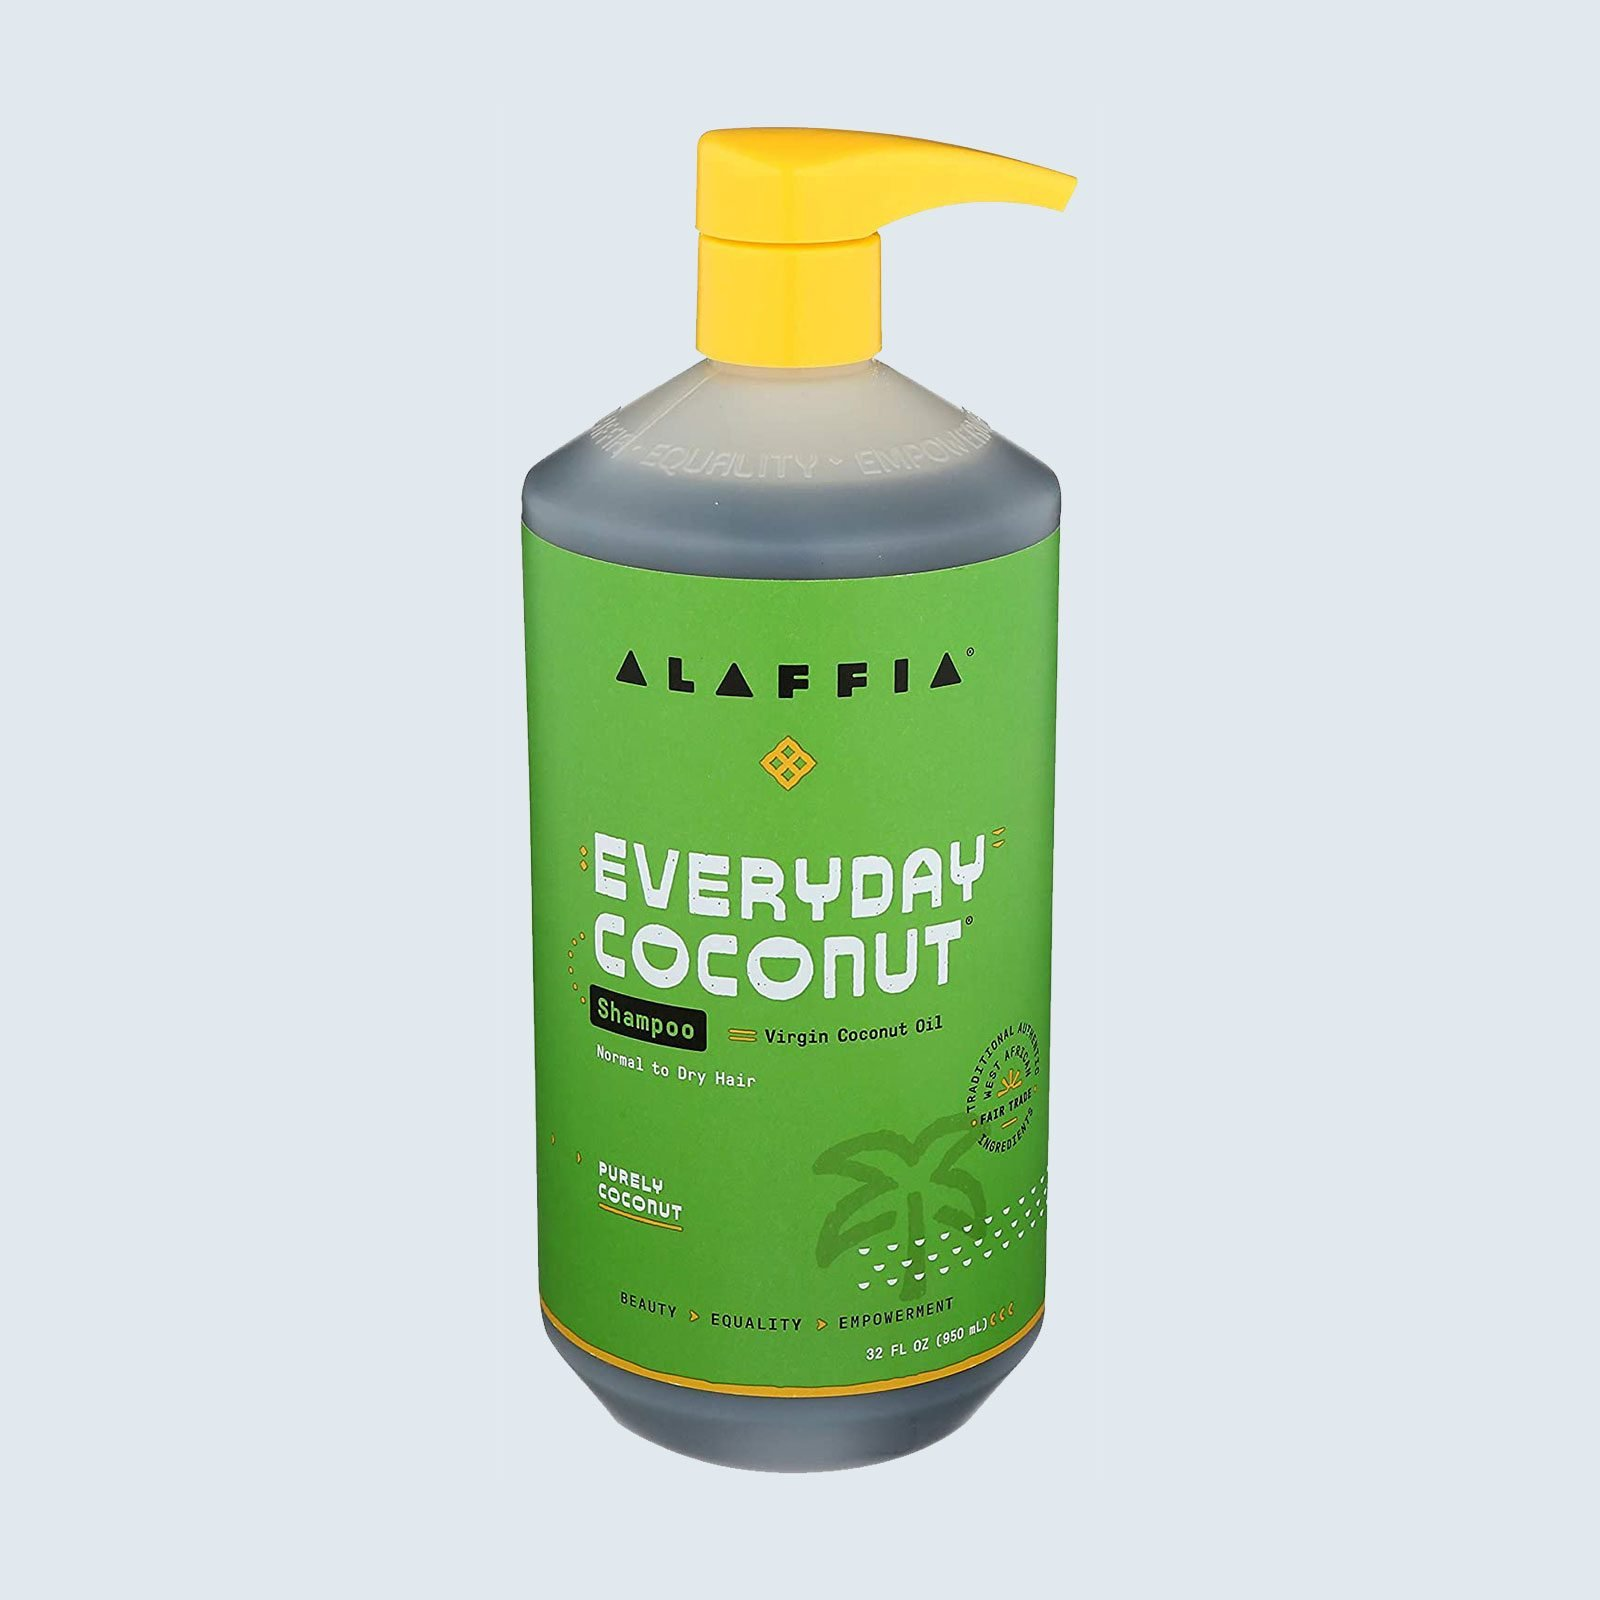 Best shampoo for curly hair from a Black-owned brand: Alaffia Everyday Coconut Shampoo